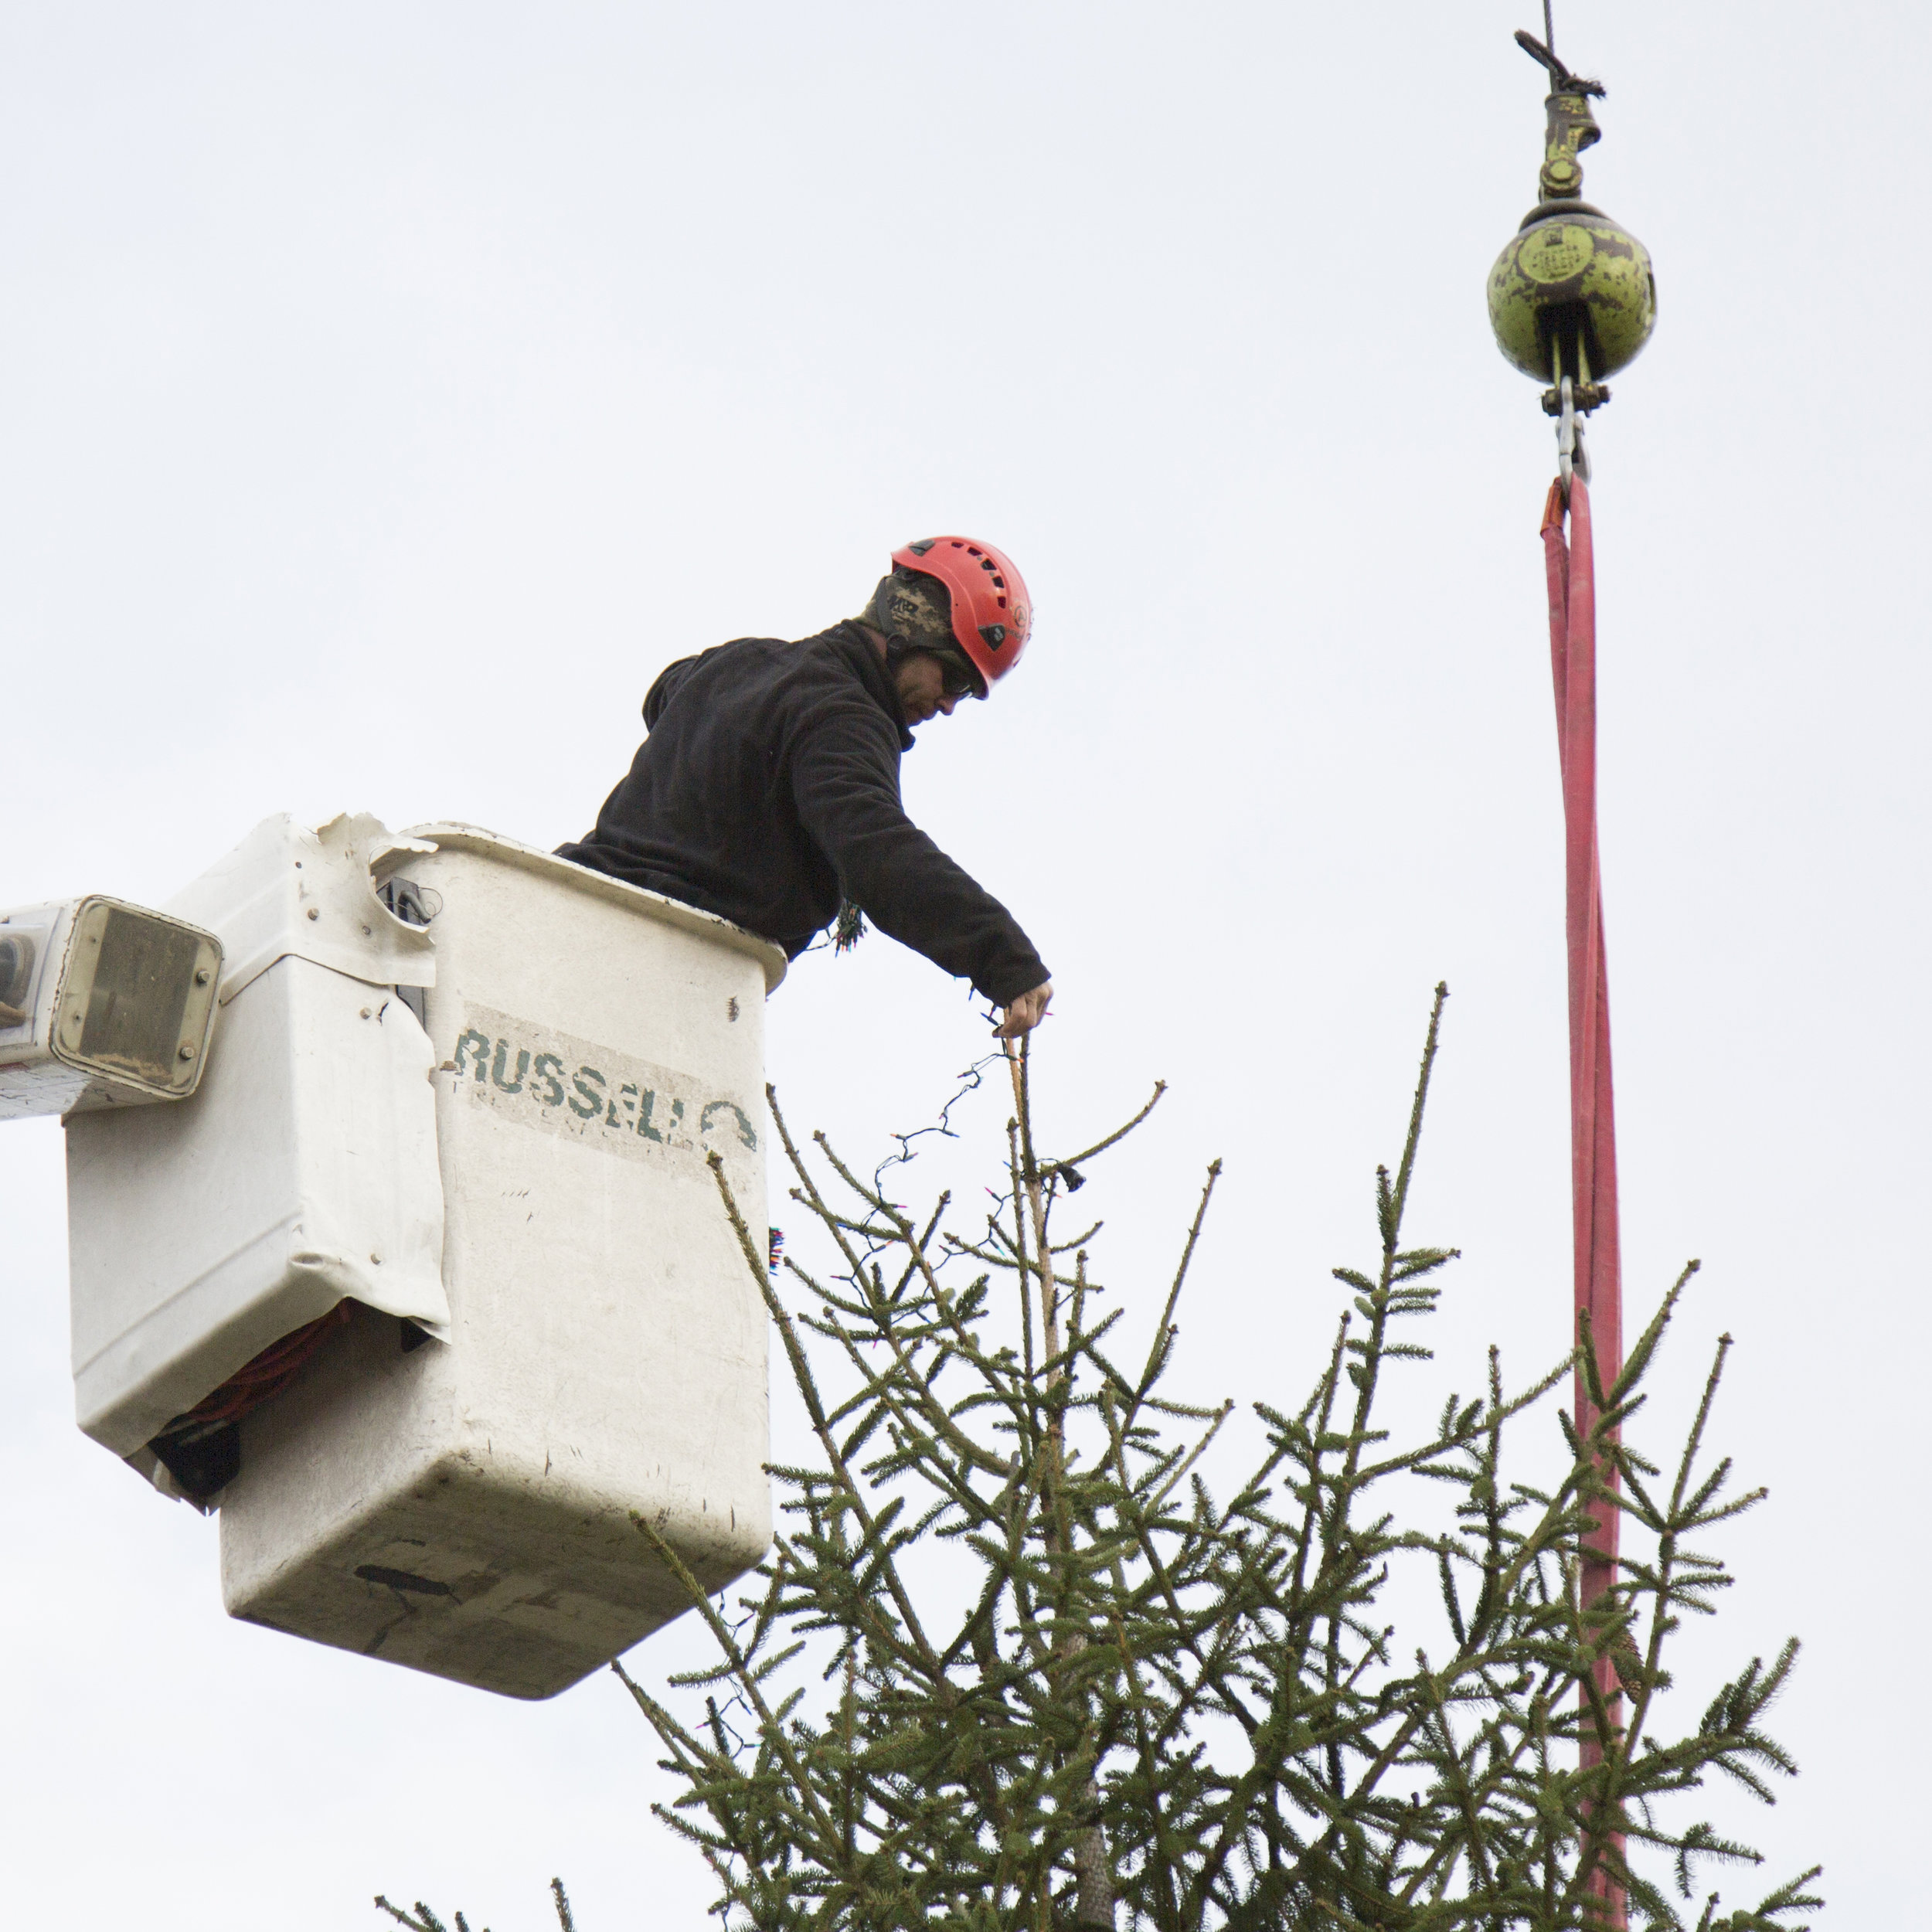 Holiday Tree Installations - With our cranes and buckets trucks, we can install and light even the largest of trees in your park